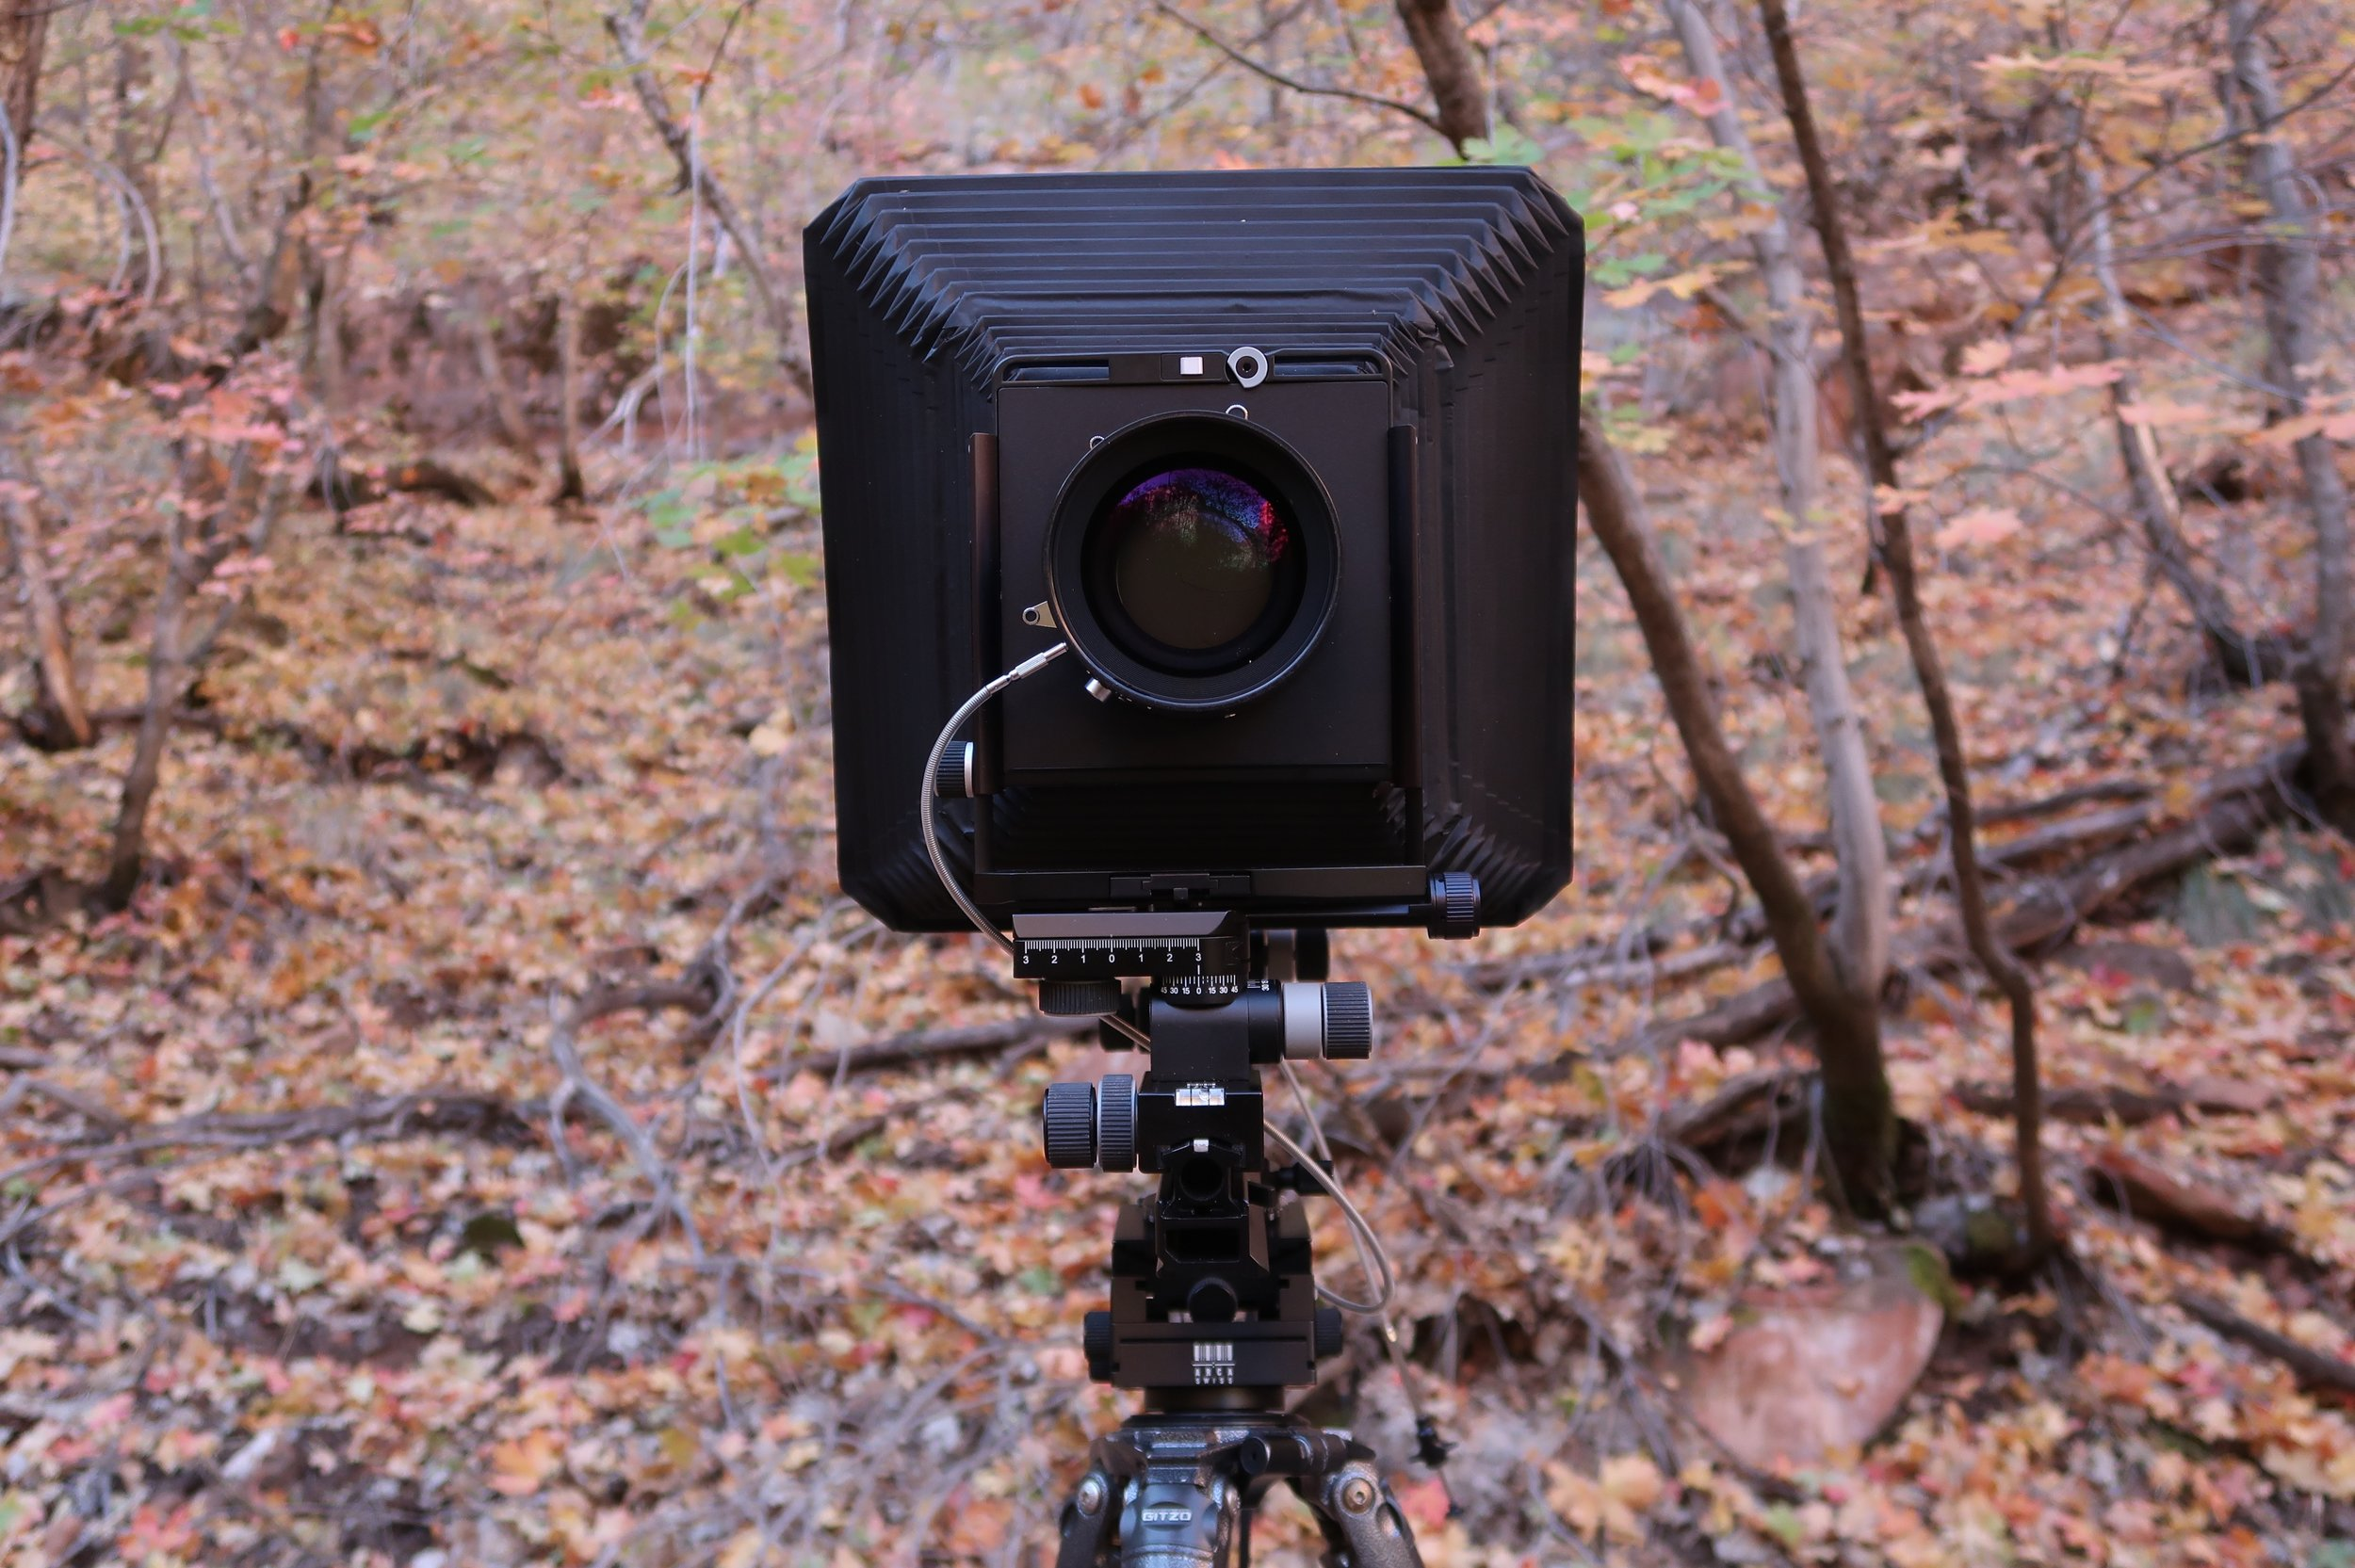 My Arca-Swiss F Metric 8x10 camera with Micrometric Orbix control, along with a Nikkor-W 300mm F/5.6 lens. The camera is mounted to a Gitzo GT3532LS Systematic tripod and an Arca-Swiss C1 Cube tripod head in one of Zion's beautiful maple groves.